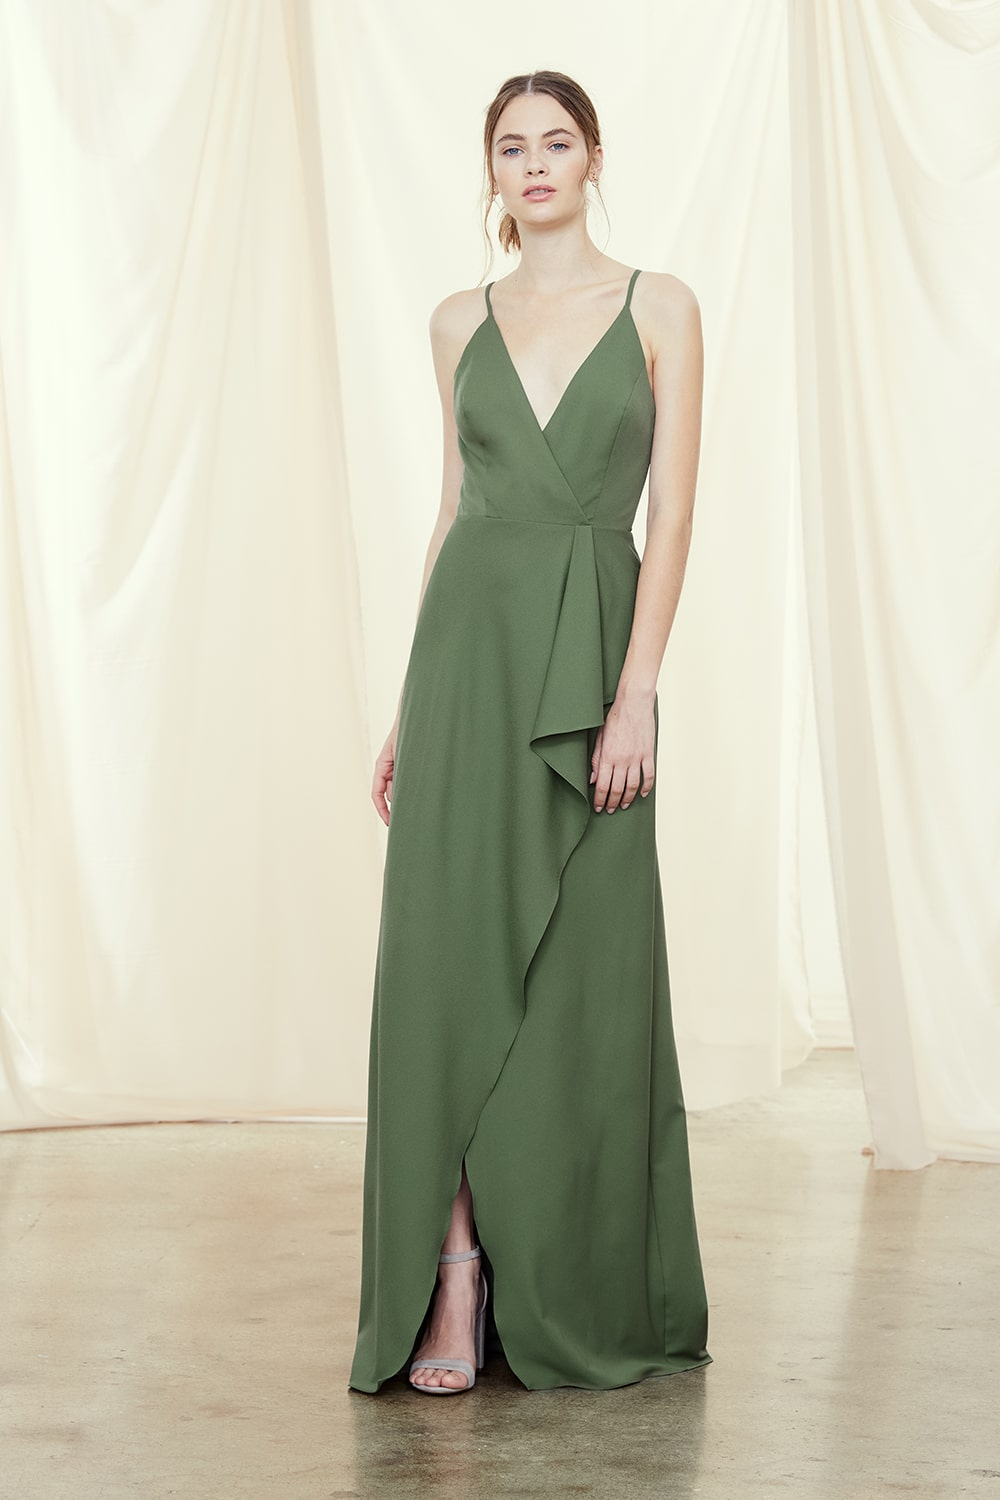 Giselle by Amsale Bridesmaids in Olive